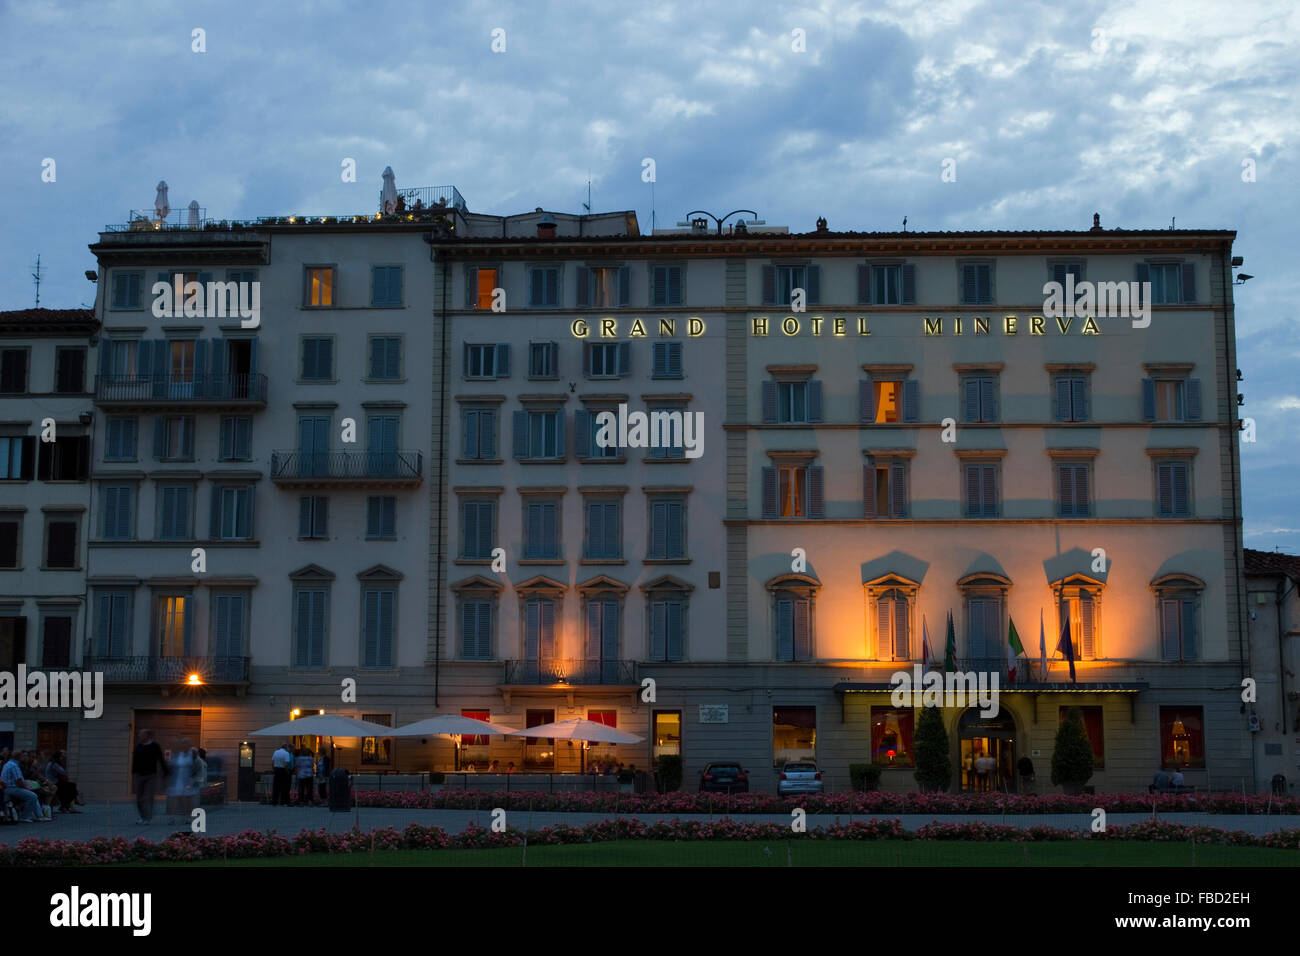 Grand Hotel Minerva in Florence, Italy. - Stock Image